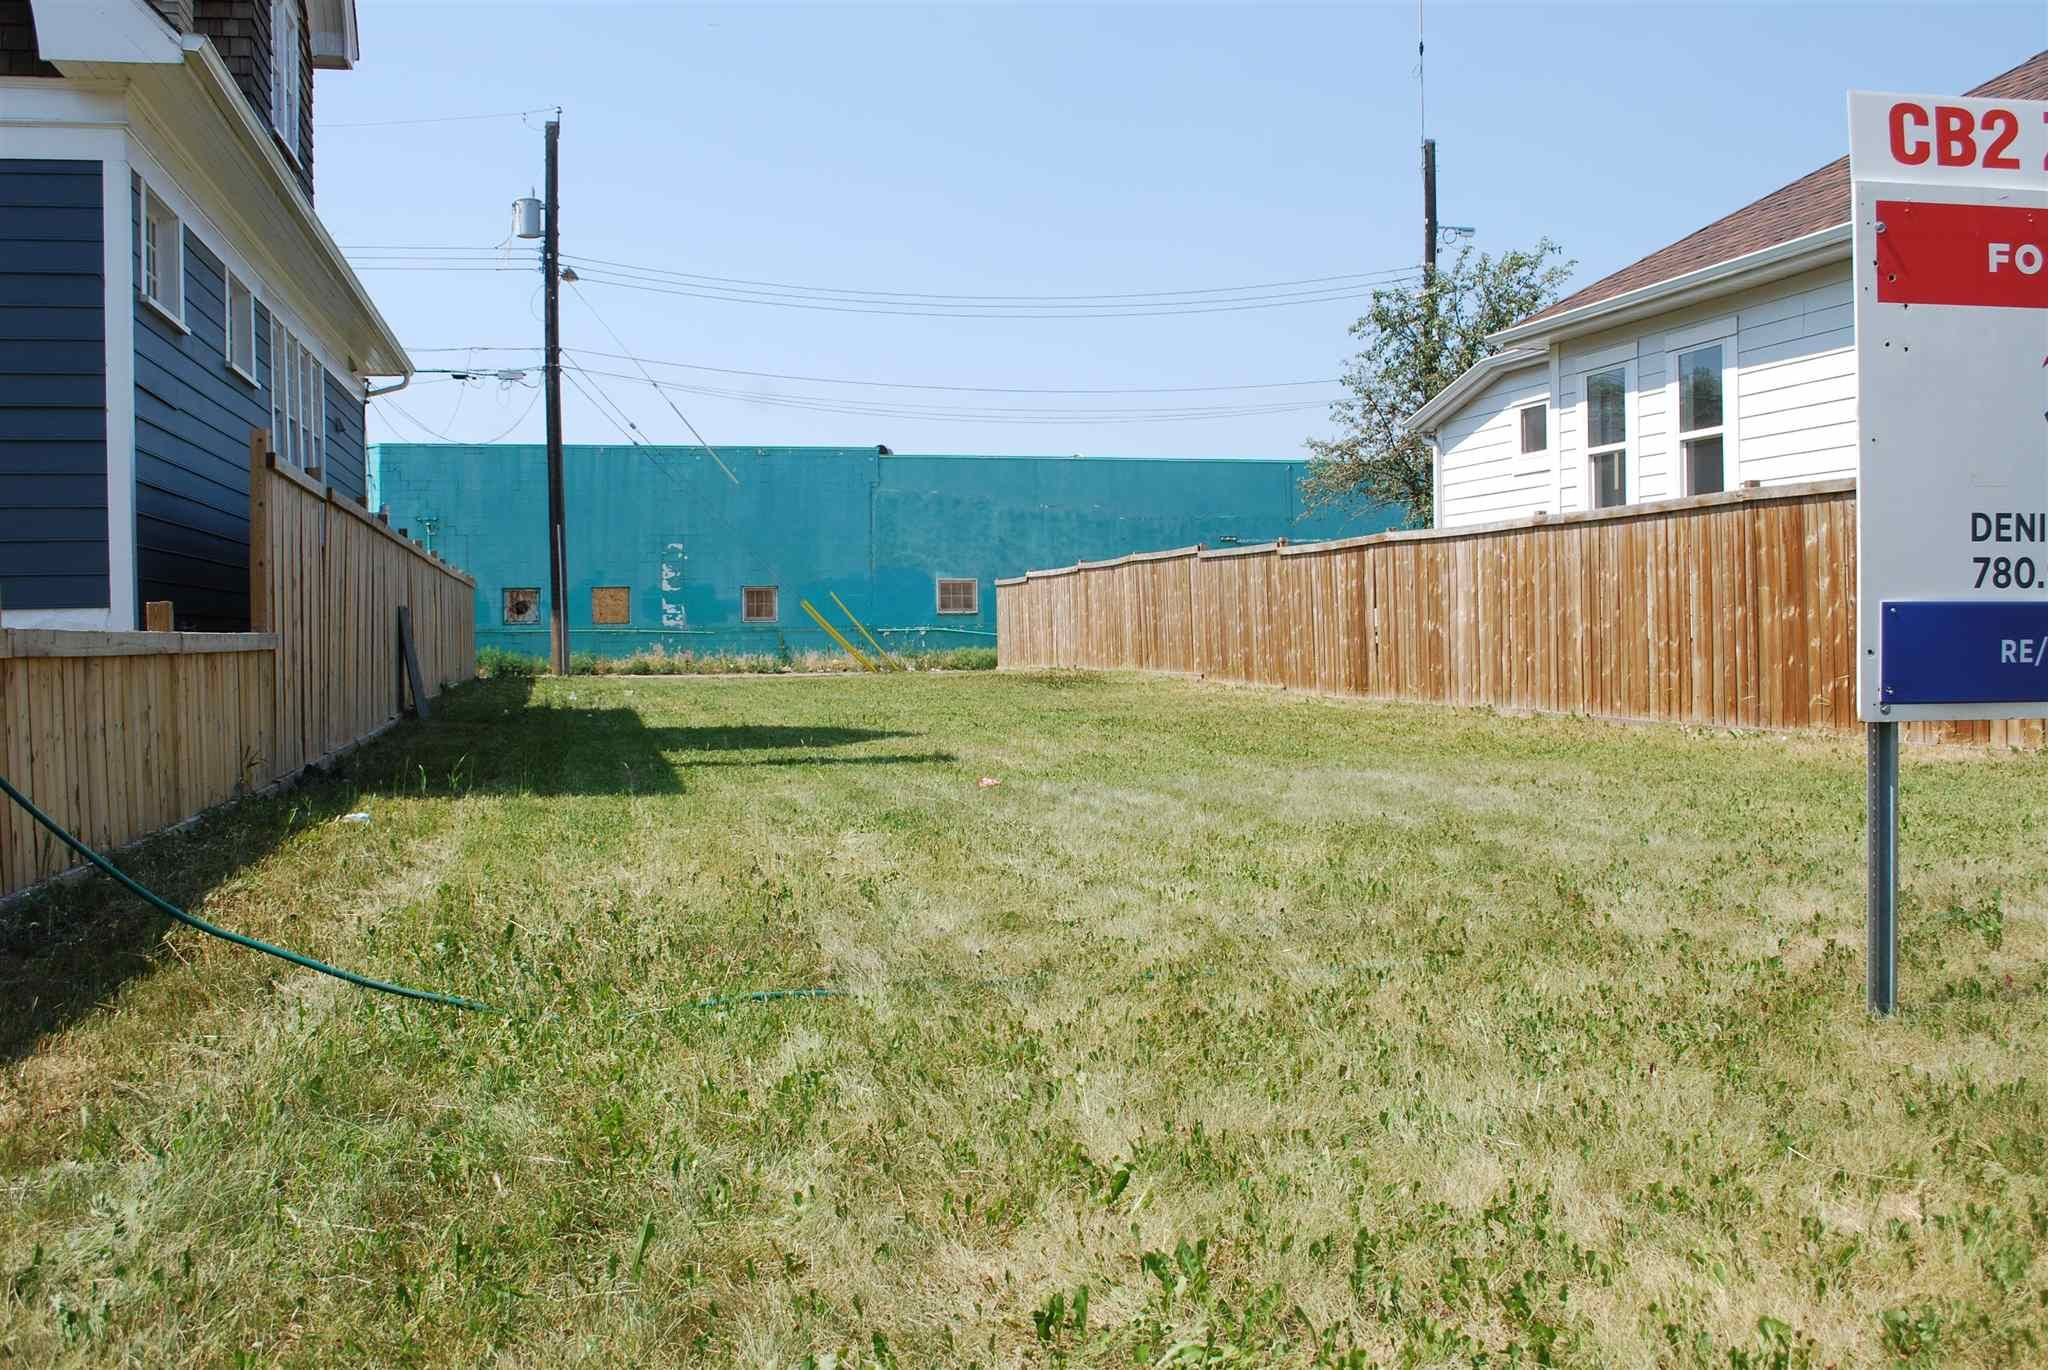 Main Photo: 11742 96 Street in Edmonton: Zone 05 Land Commercial for sale : MLS®# E4244893